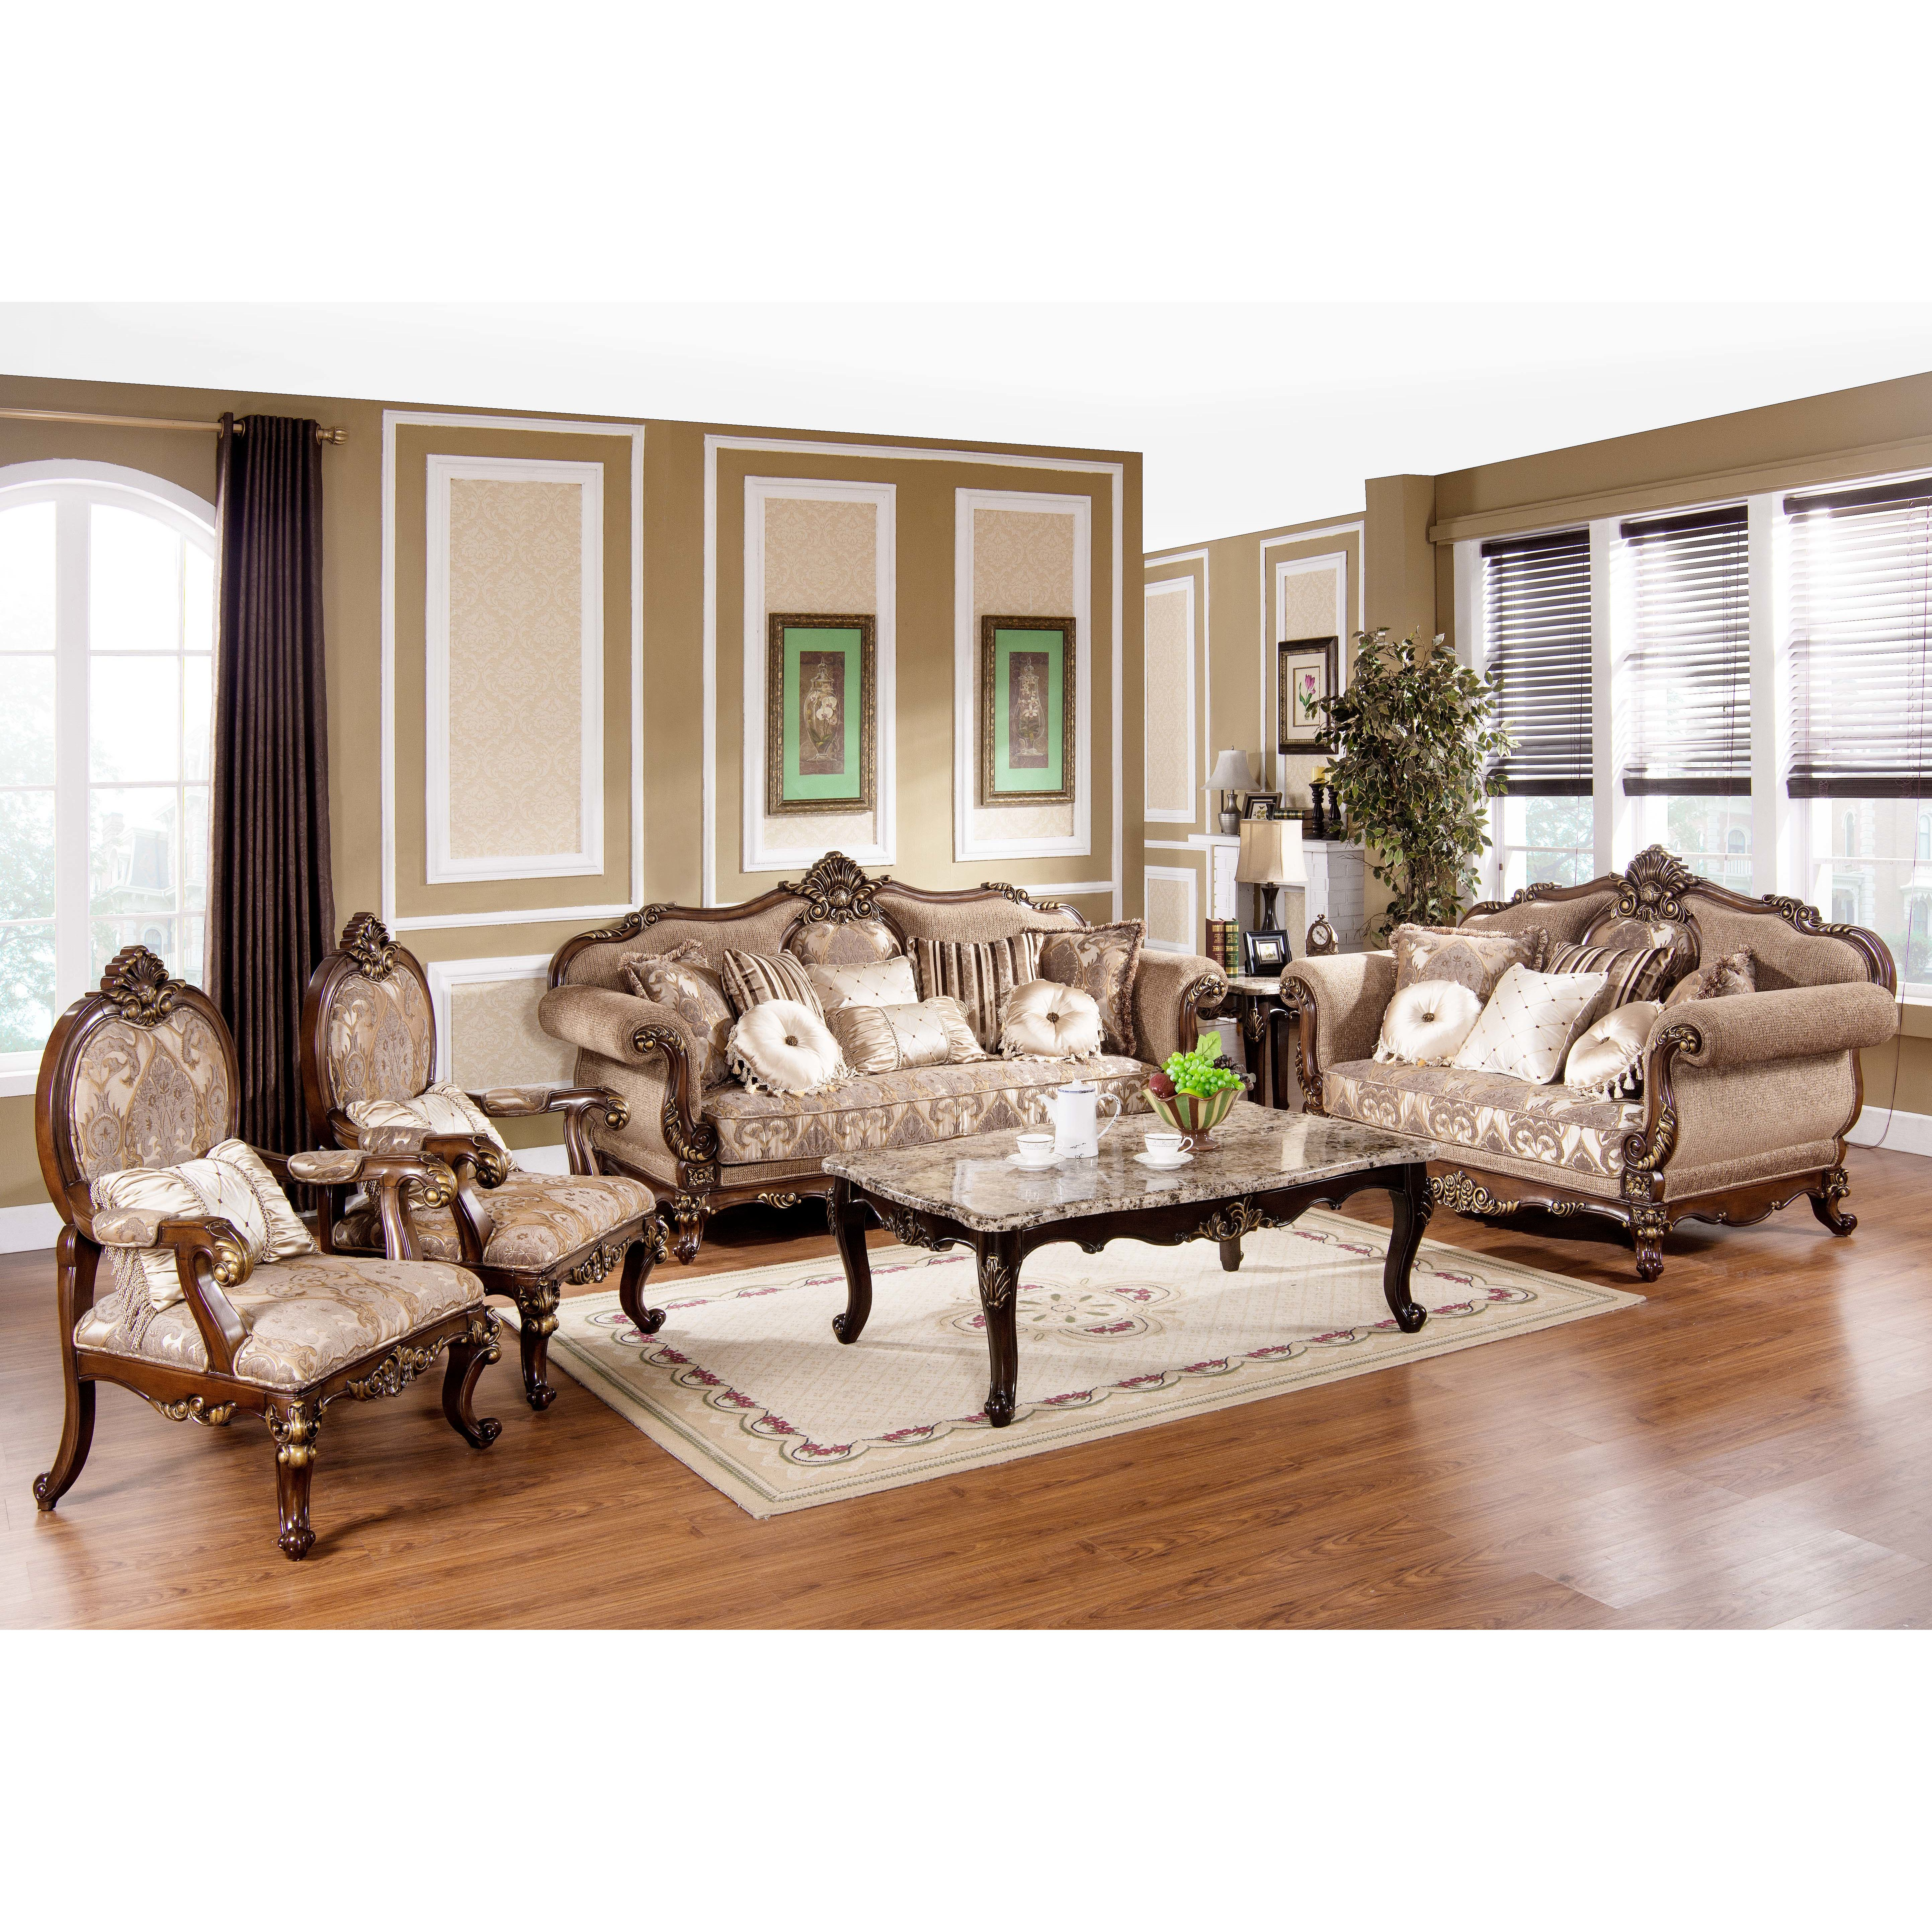 Peabody 2 Piece Living Room Set Living Room Sets Furniture